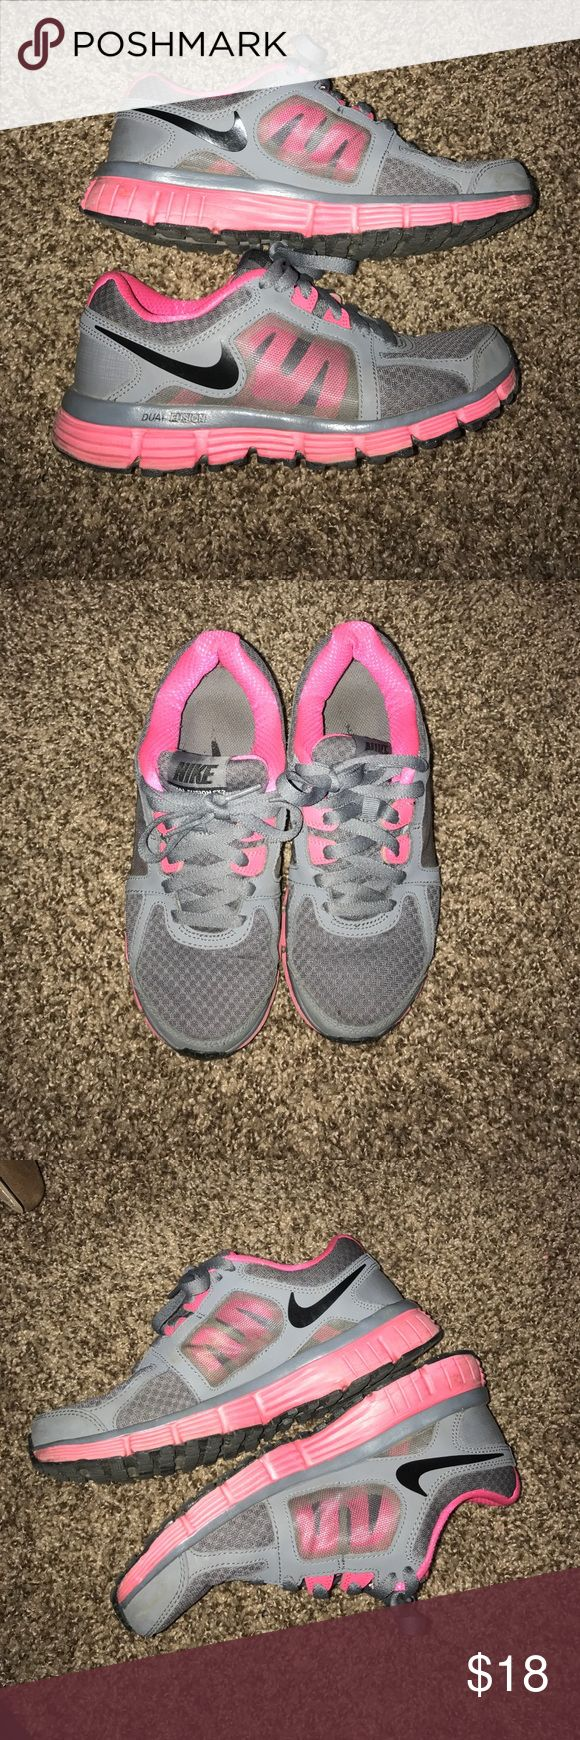 Nike Dual fusion tennis shoes Hot pink and gray Nike Dual fusion tennis shoes Nike Shoes Sneakers